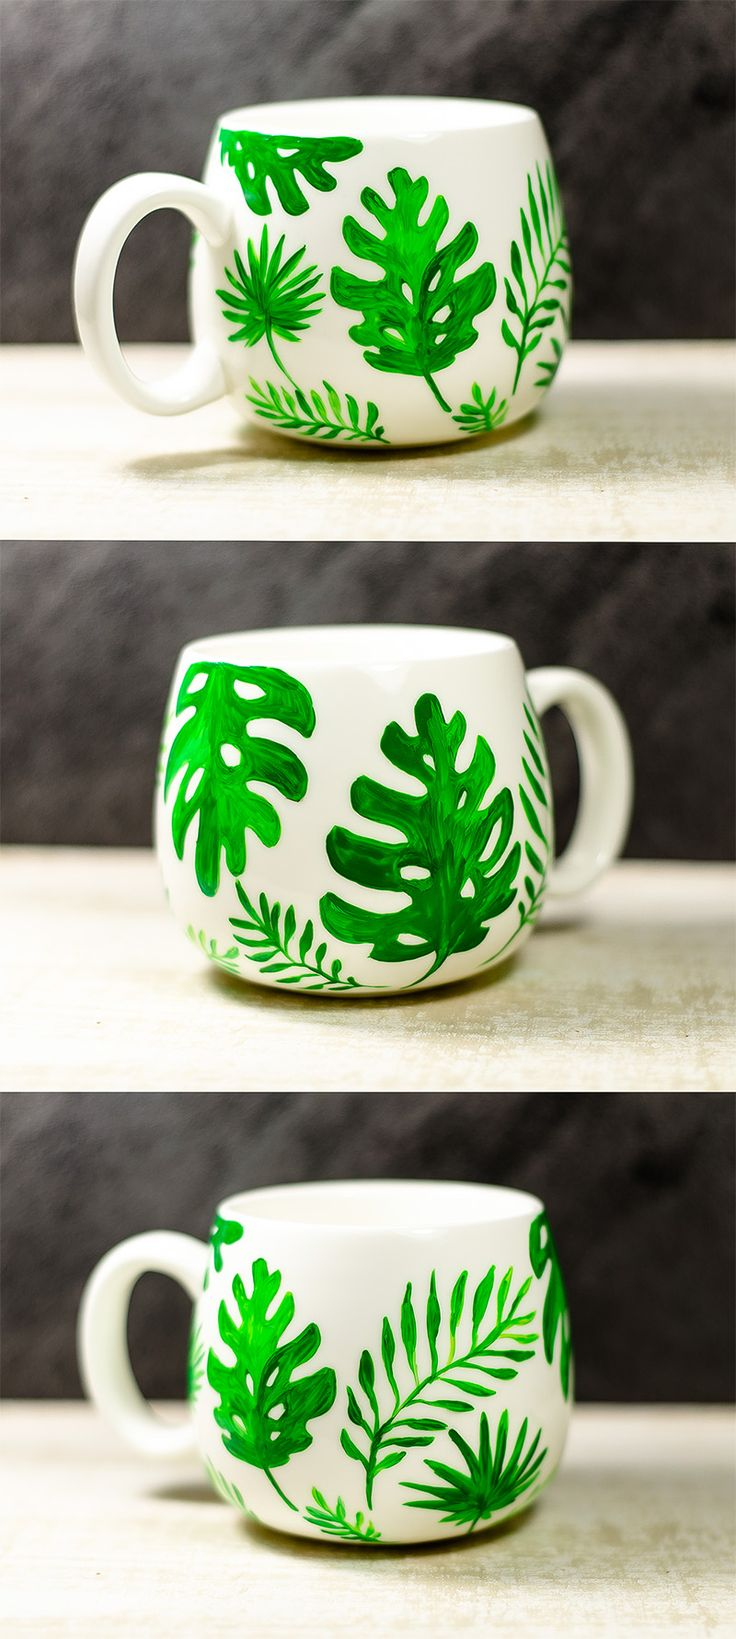 Summer Outdoors Tropical Mug, Palm Leaves Personalized Mug, Ceramic Coffee Cup, Hand Painted Tropical Dorm Decor